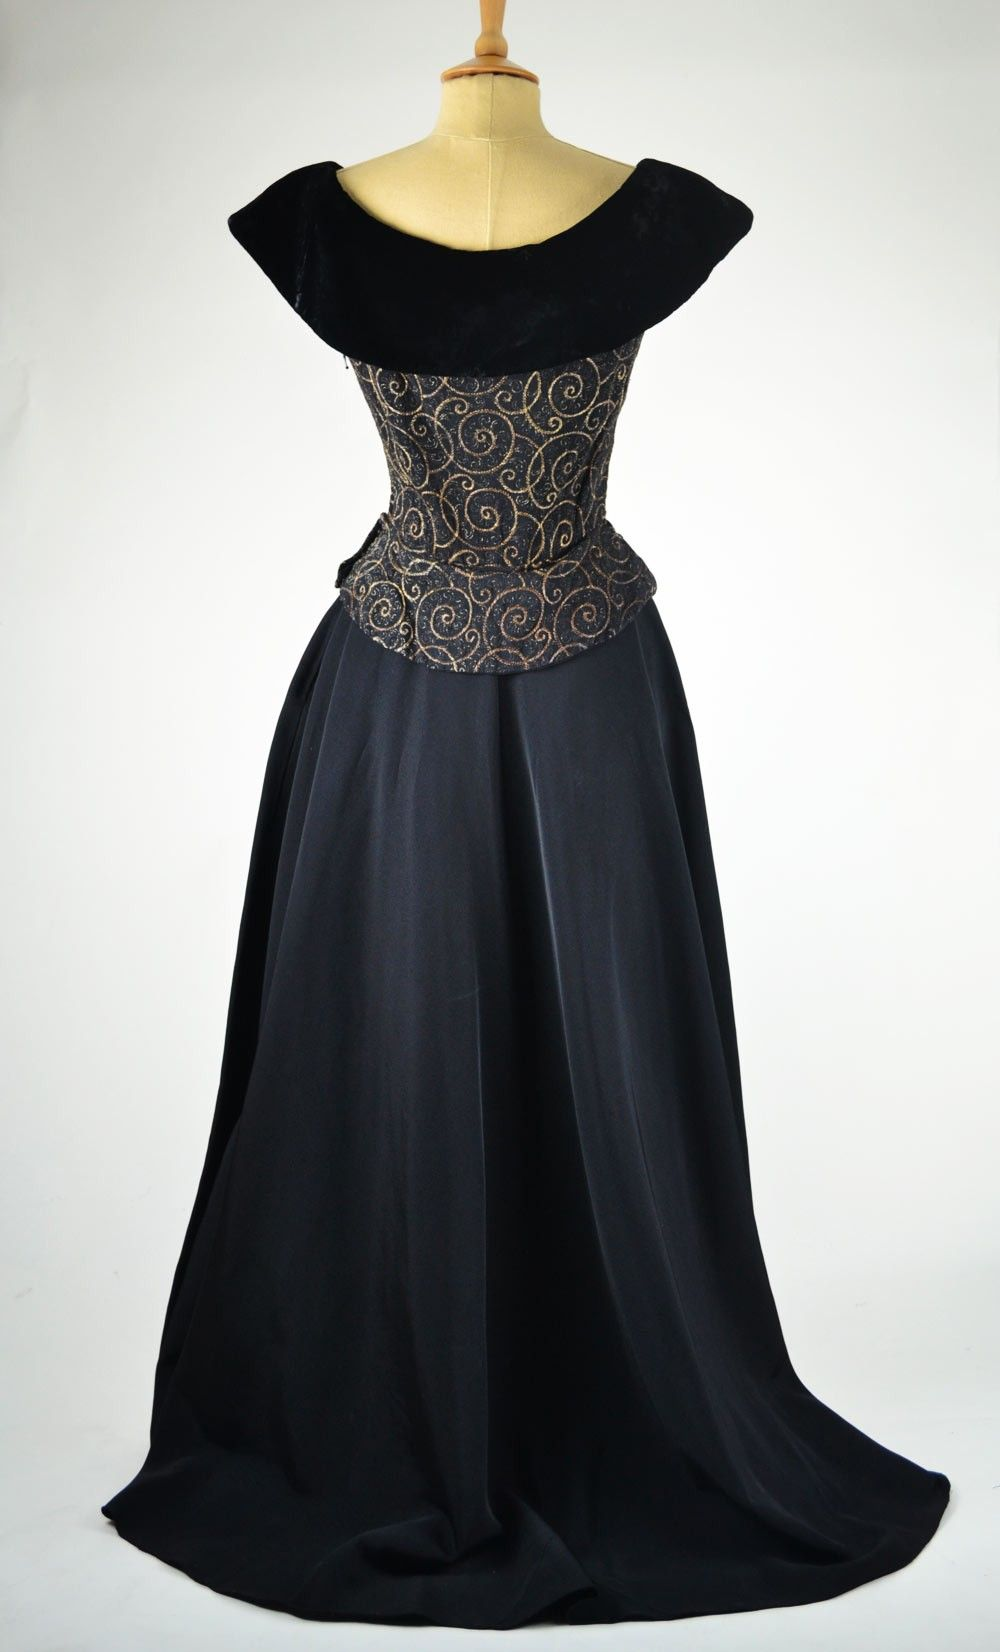 Vintage Evening Dresses From The 1940 S 1940s Vintage Evening Dress Black Grosgrain And Velve Evening Dresses Vintage Black Evening Dresses Vintage 40s Dress [ 1652 x 1000 Pixel ]